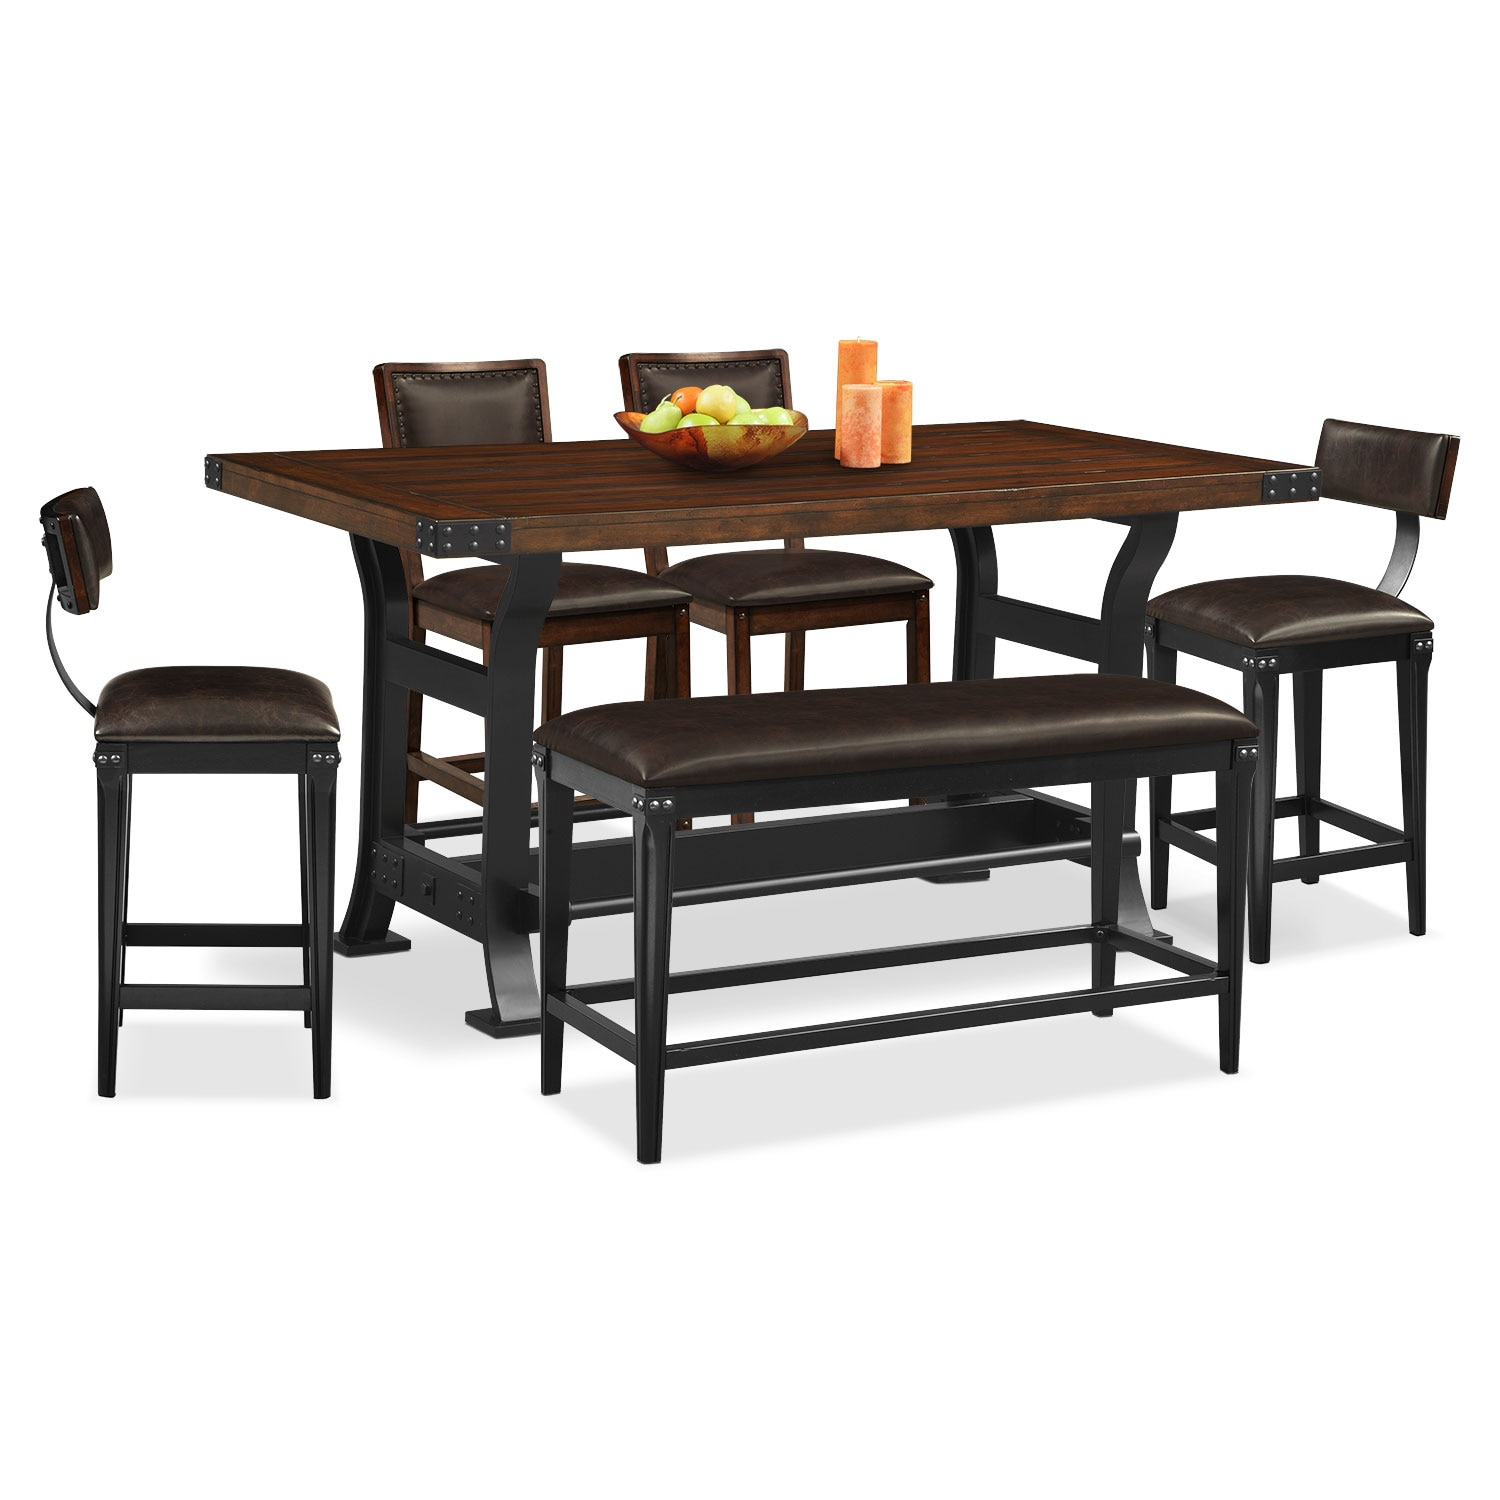 Newcastle counter height dining table 2 chairs 2 stools for What size dining table for 10x12 room